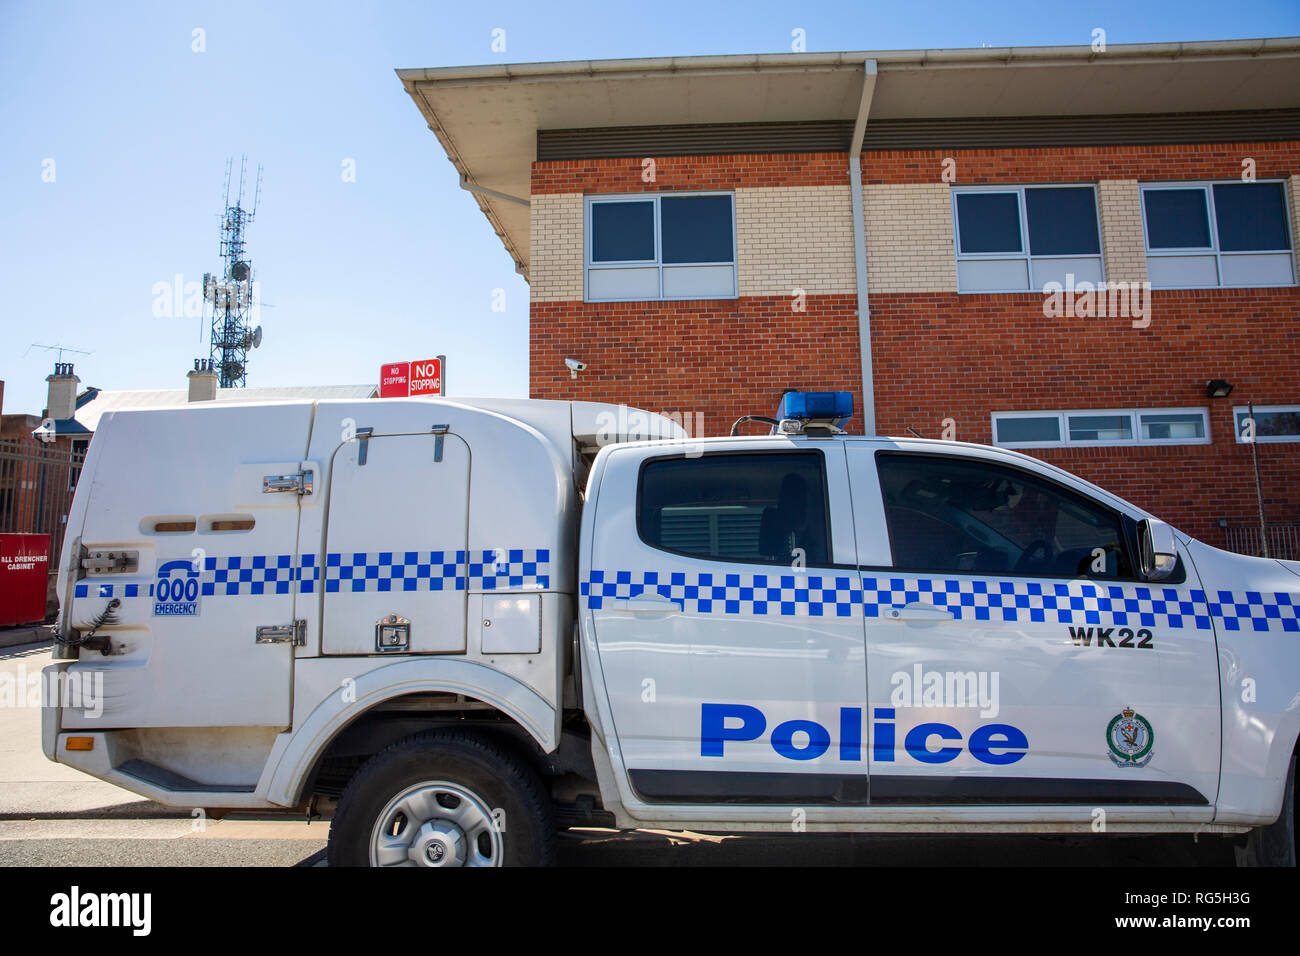 NSW Police van car parked outside Kempsey Police station,Kempsey,New South Wales,Australia - Stock Image